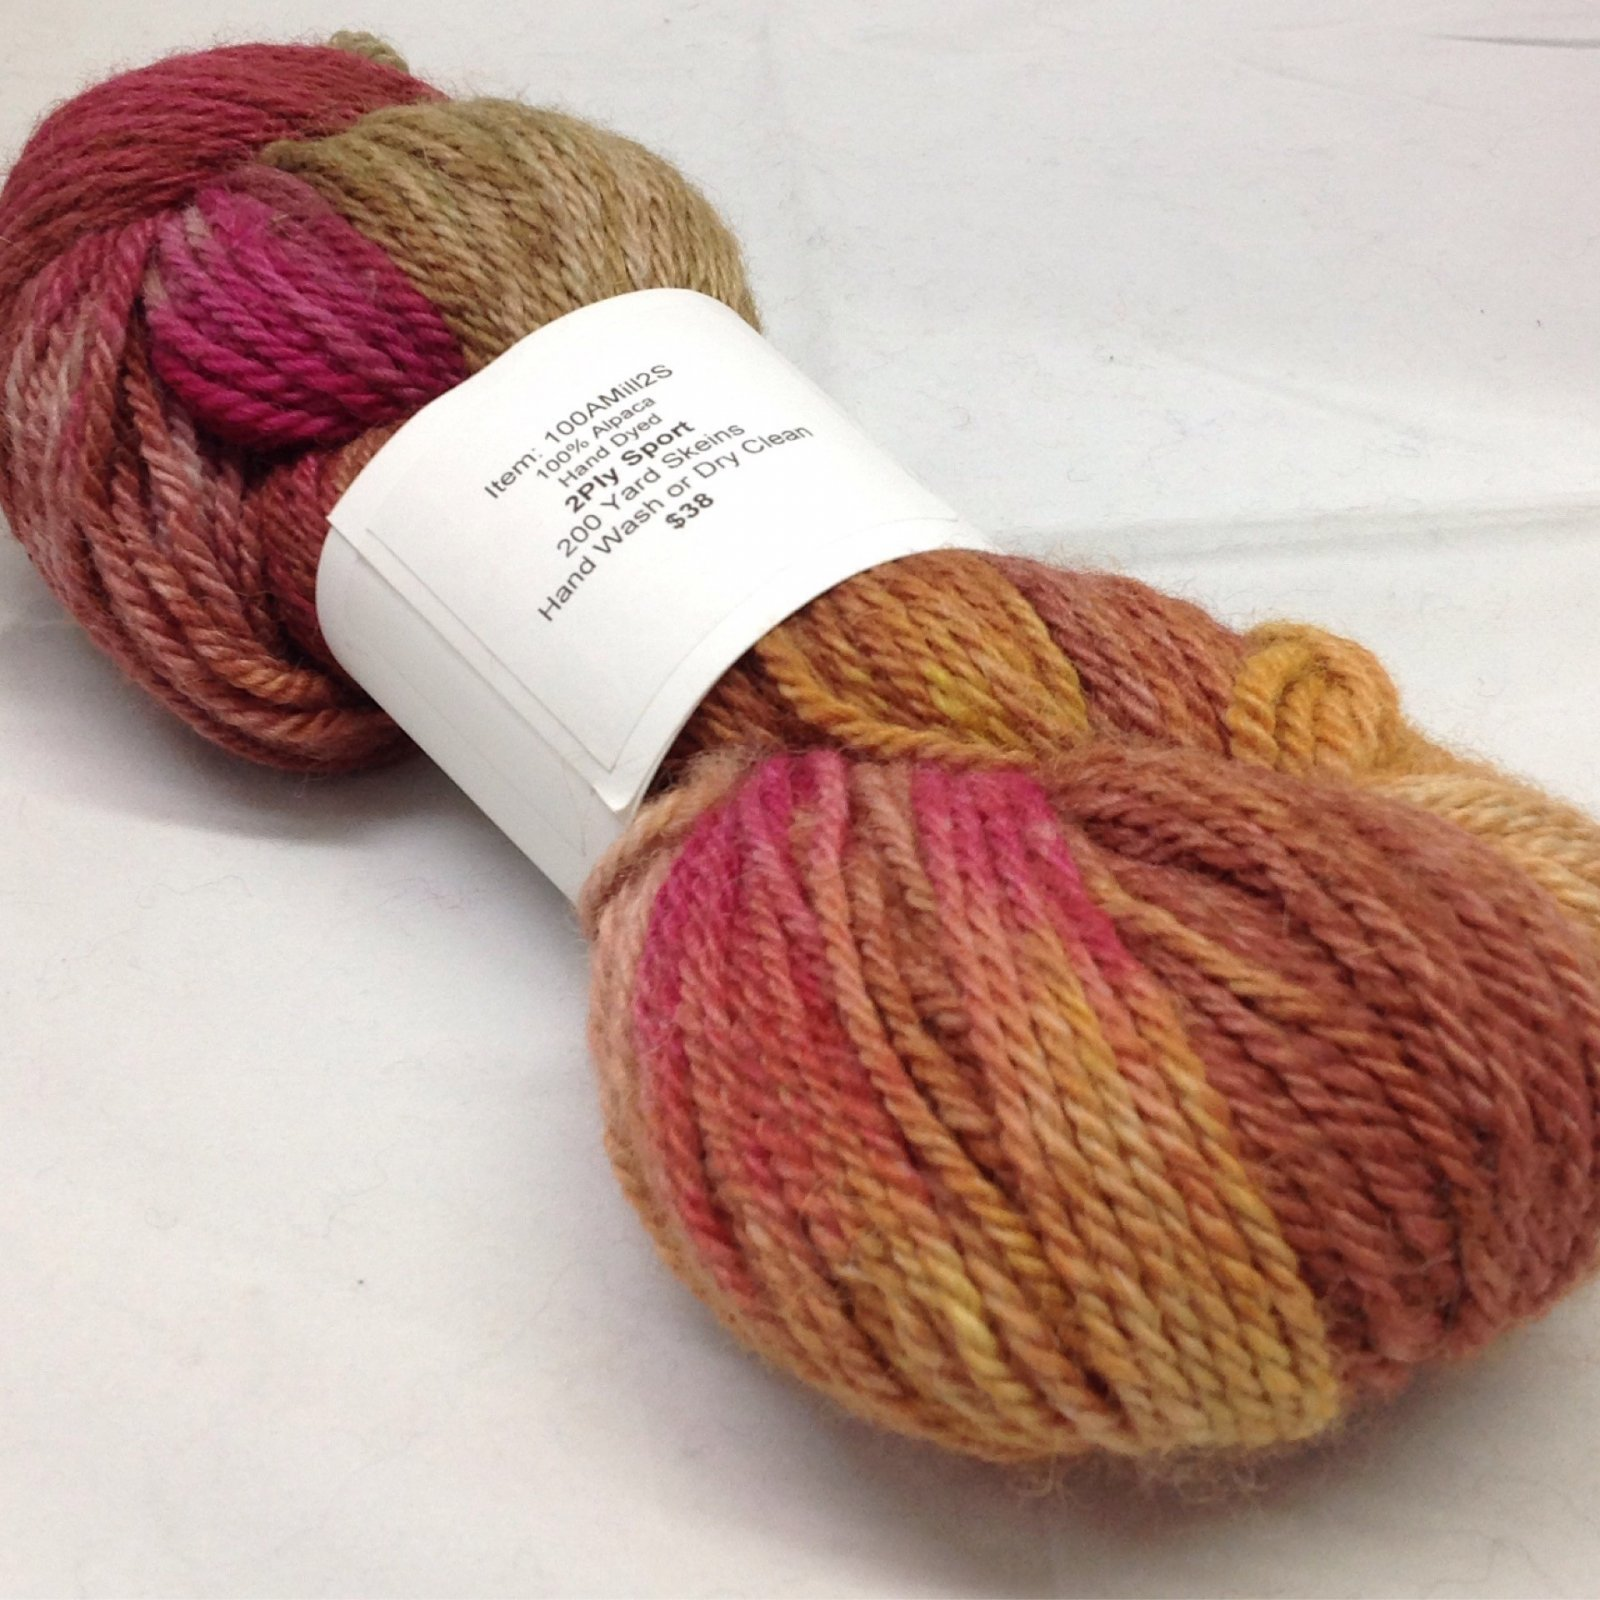 2 Ply Sport, Hand Dyed